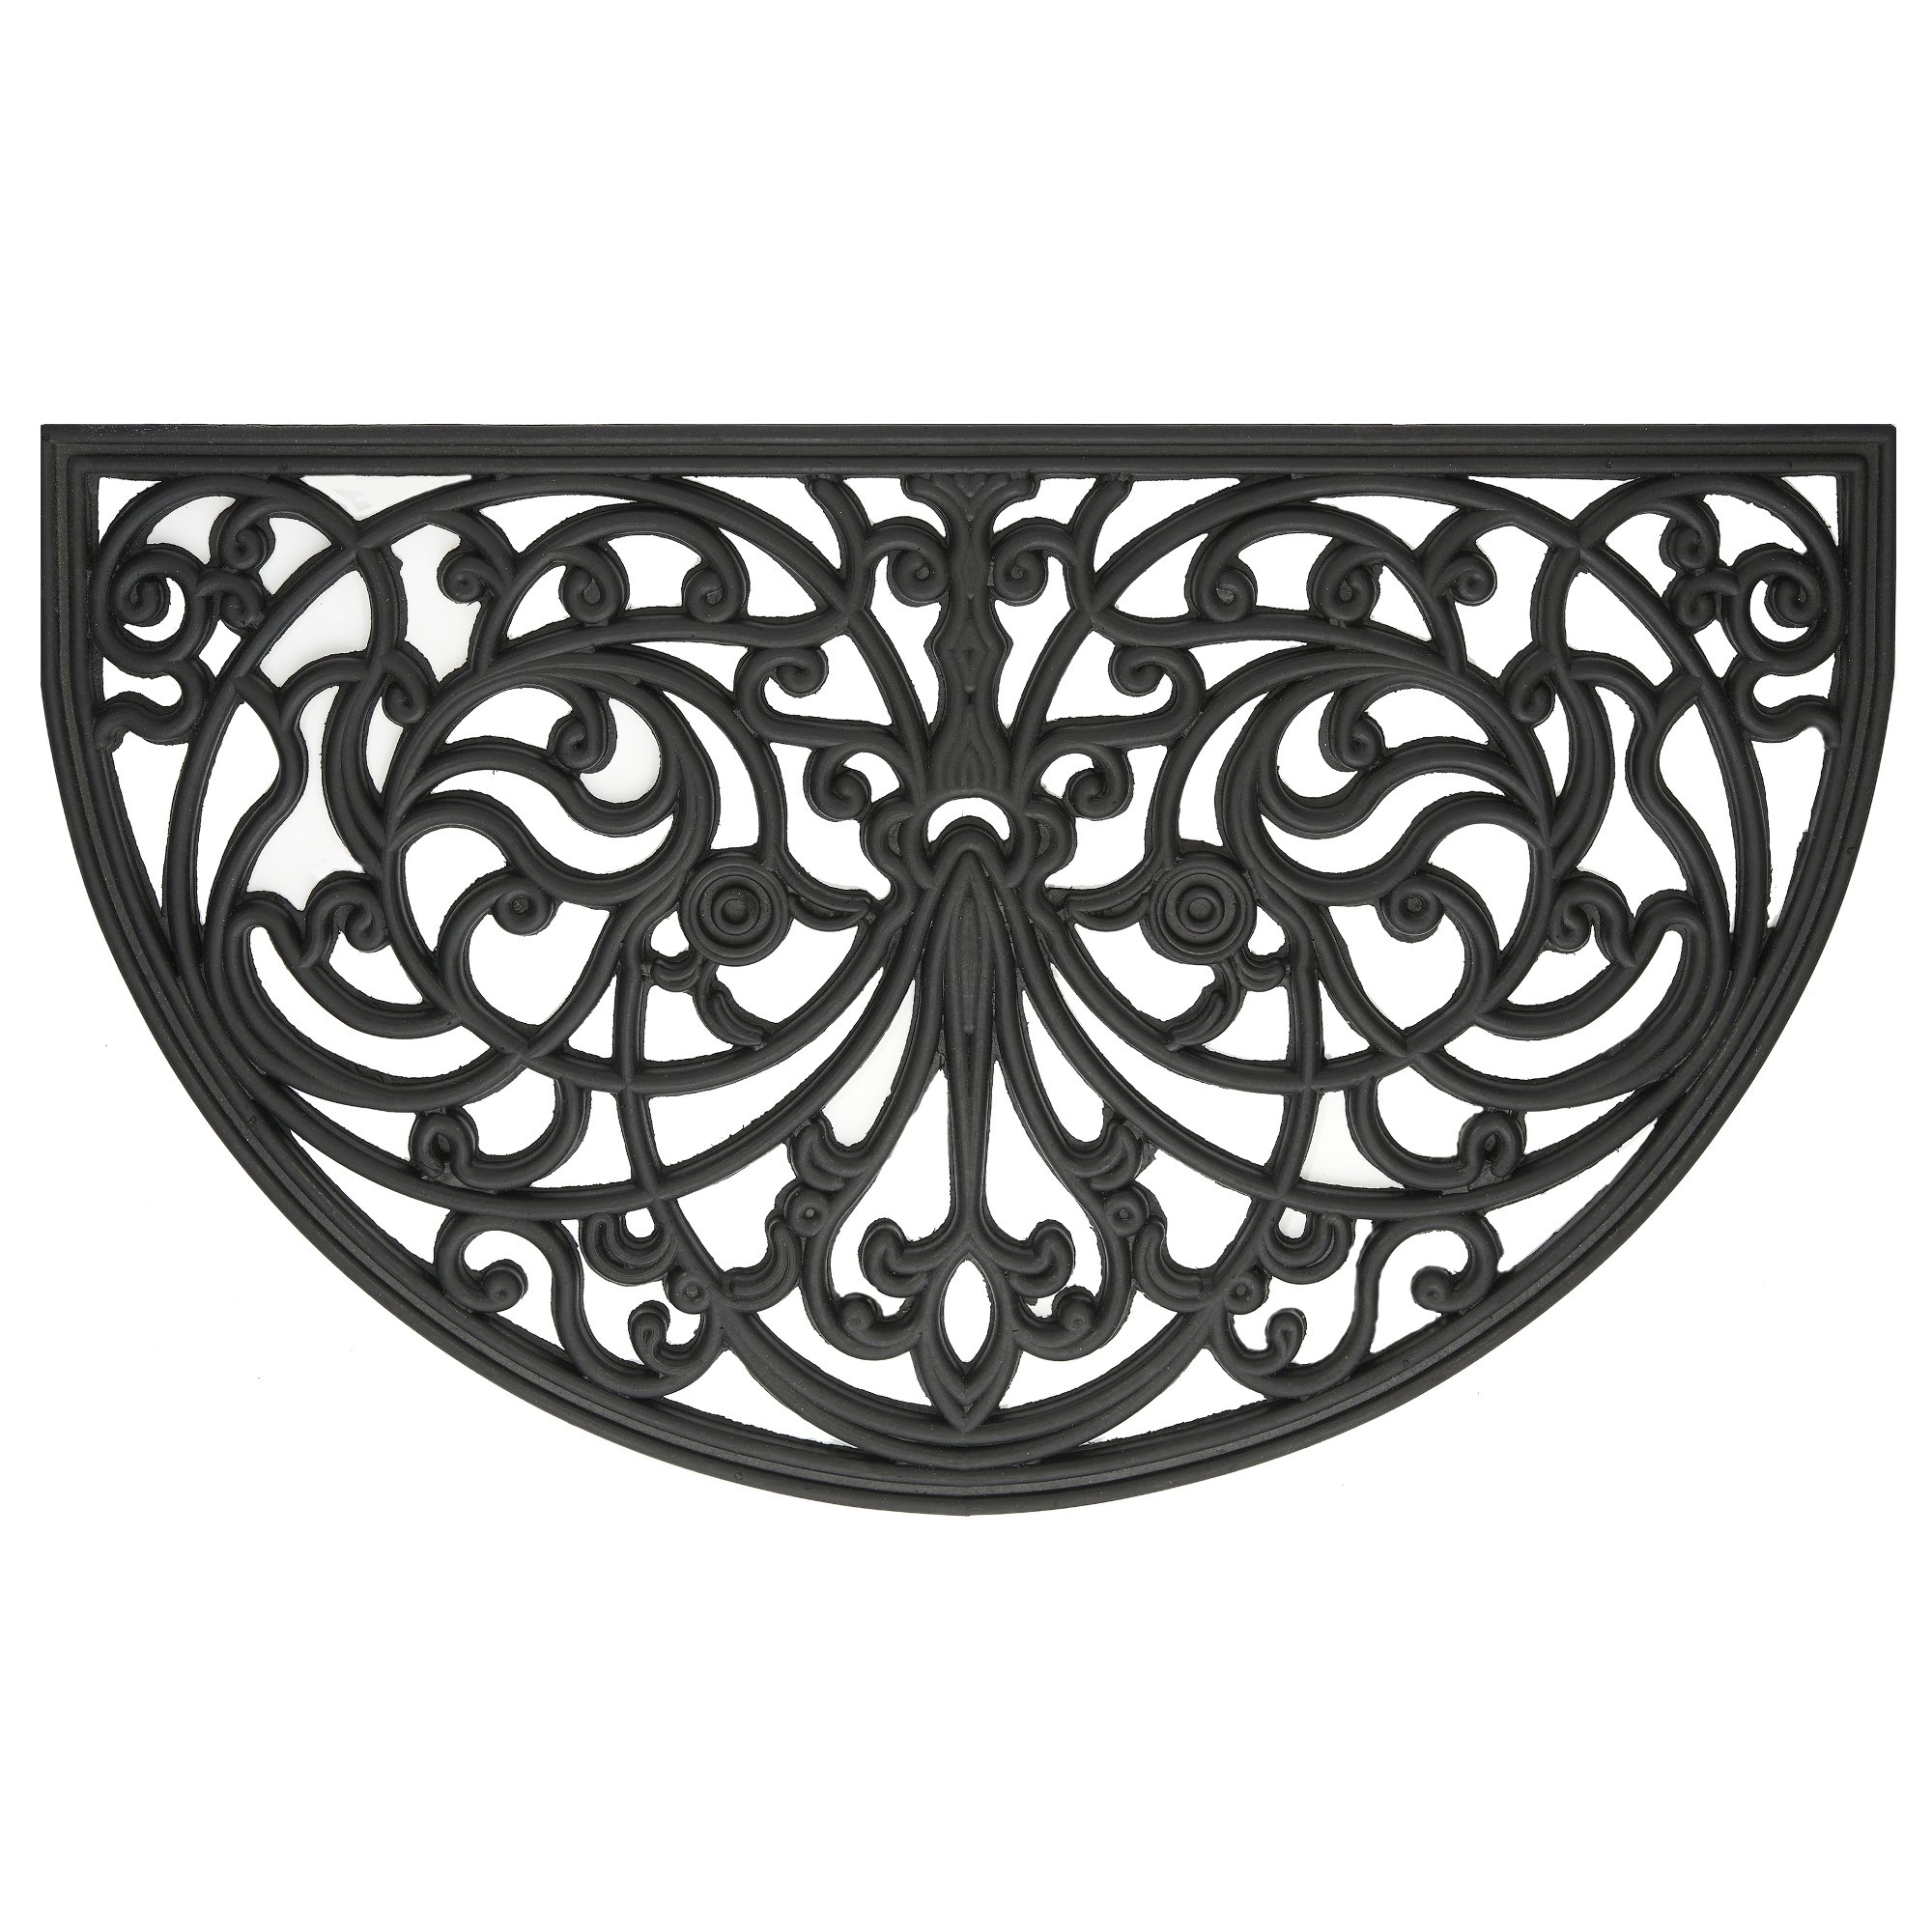 Achim Home Furnishings WRM1830IW6 Ironworks Wrought Iron Rubber Door Mat, 18 by 30''